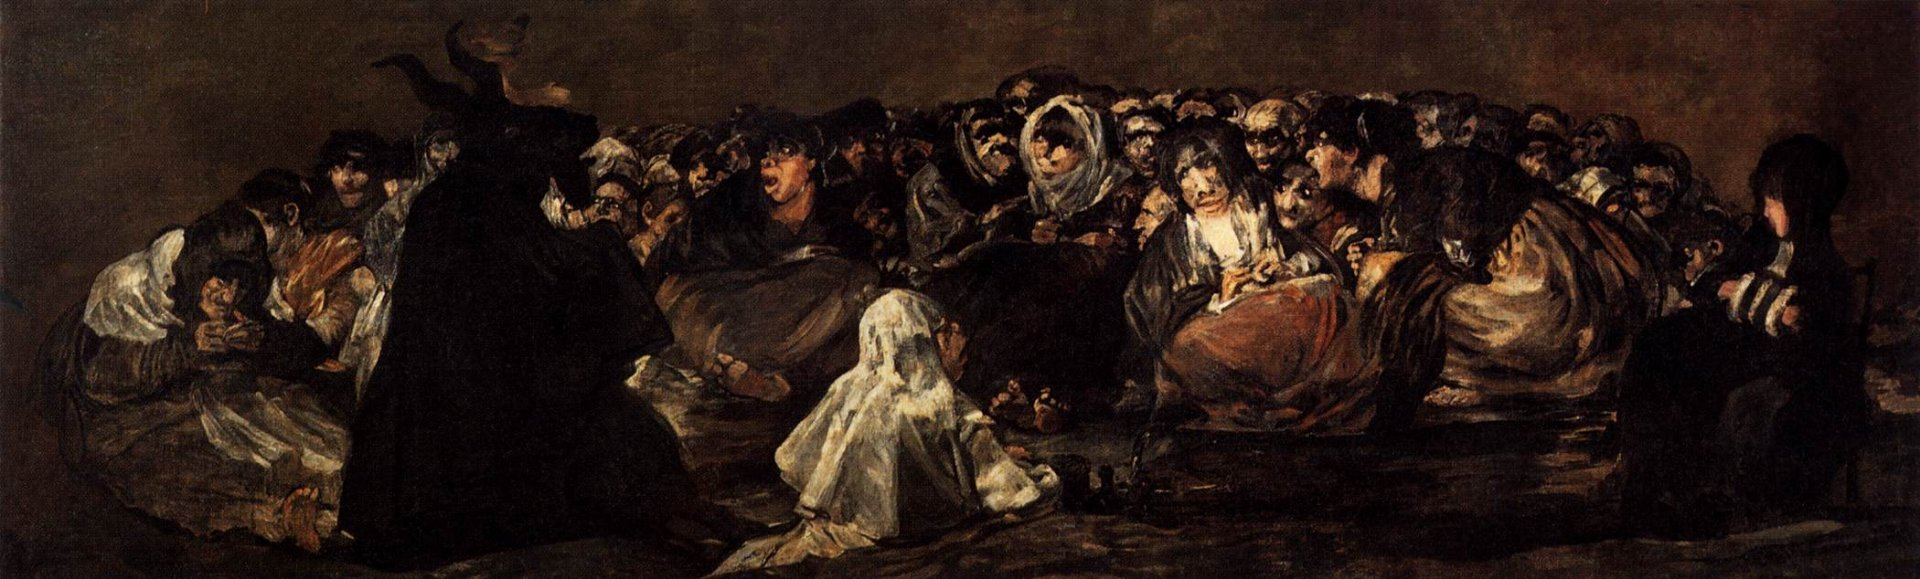 the-great-he-goat-or-witches-sabbath.jpg